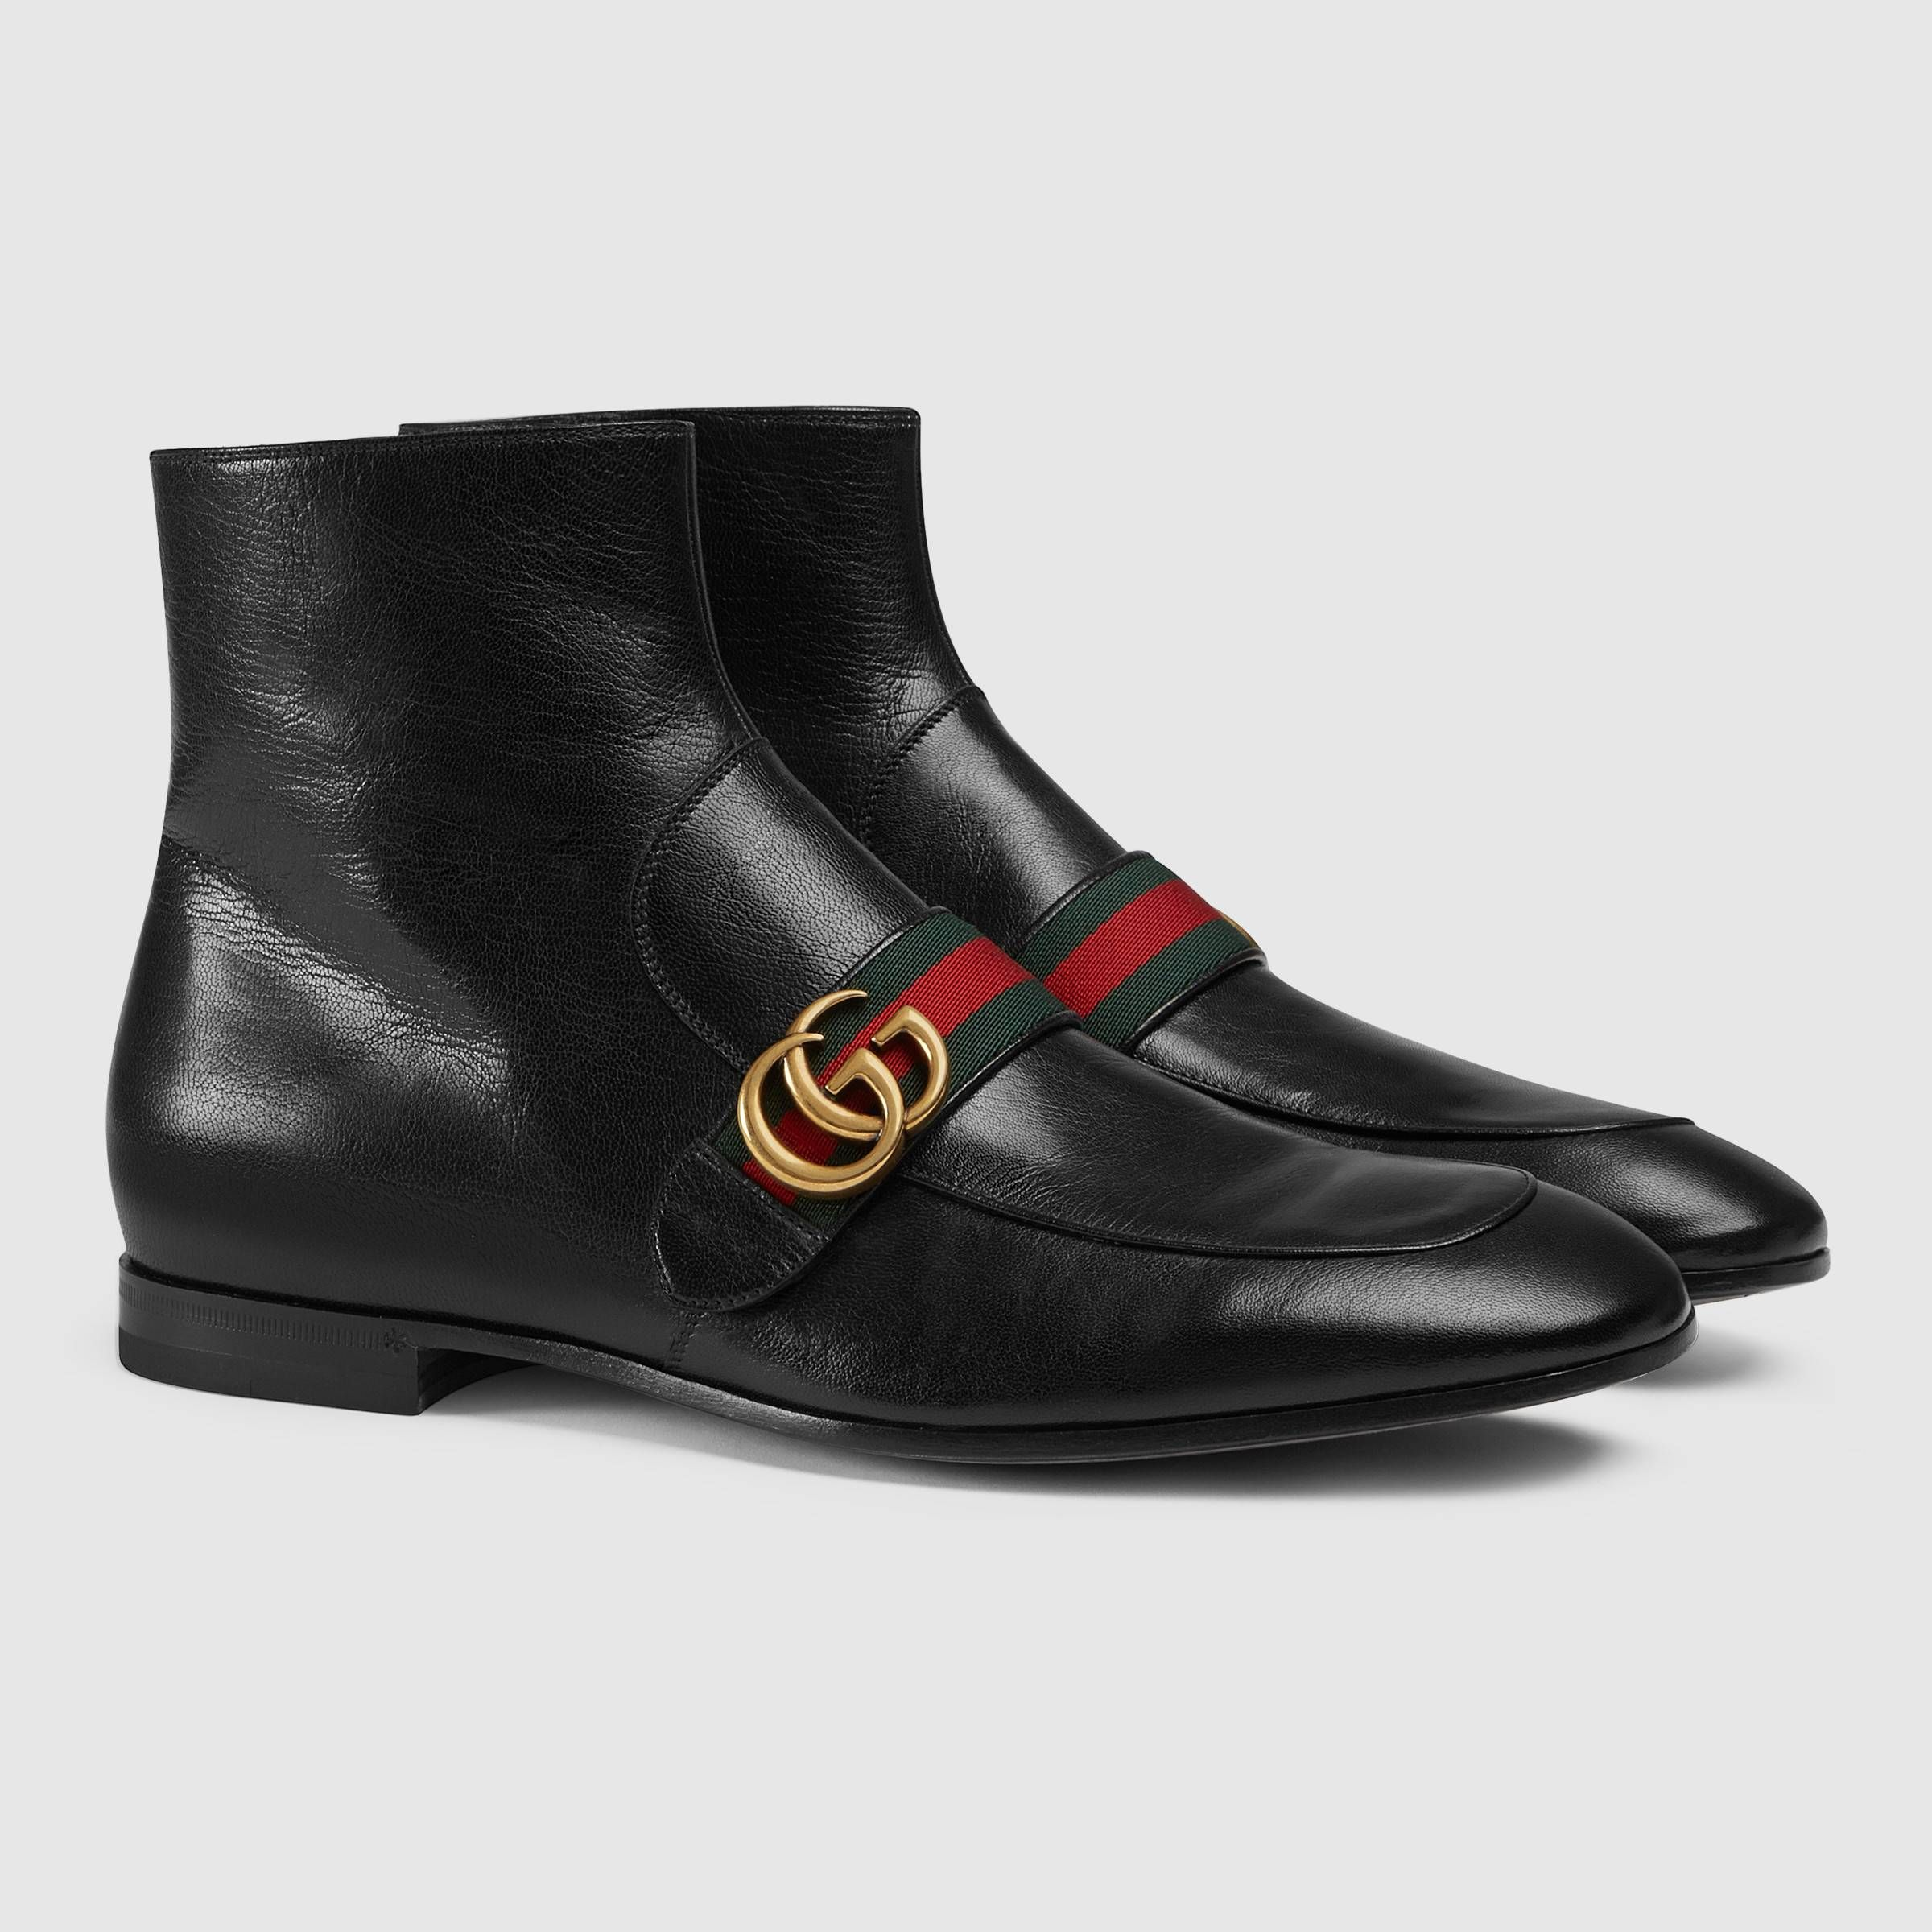 513f0bbaa70 Leather boot with Double G - Gucci Men's Boots 469896D3VN01060 ...